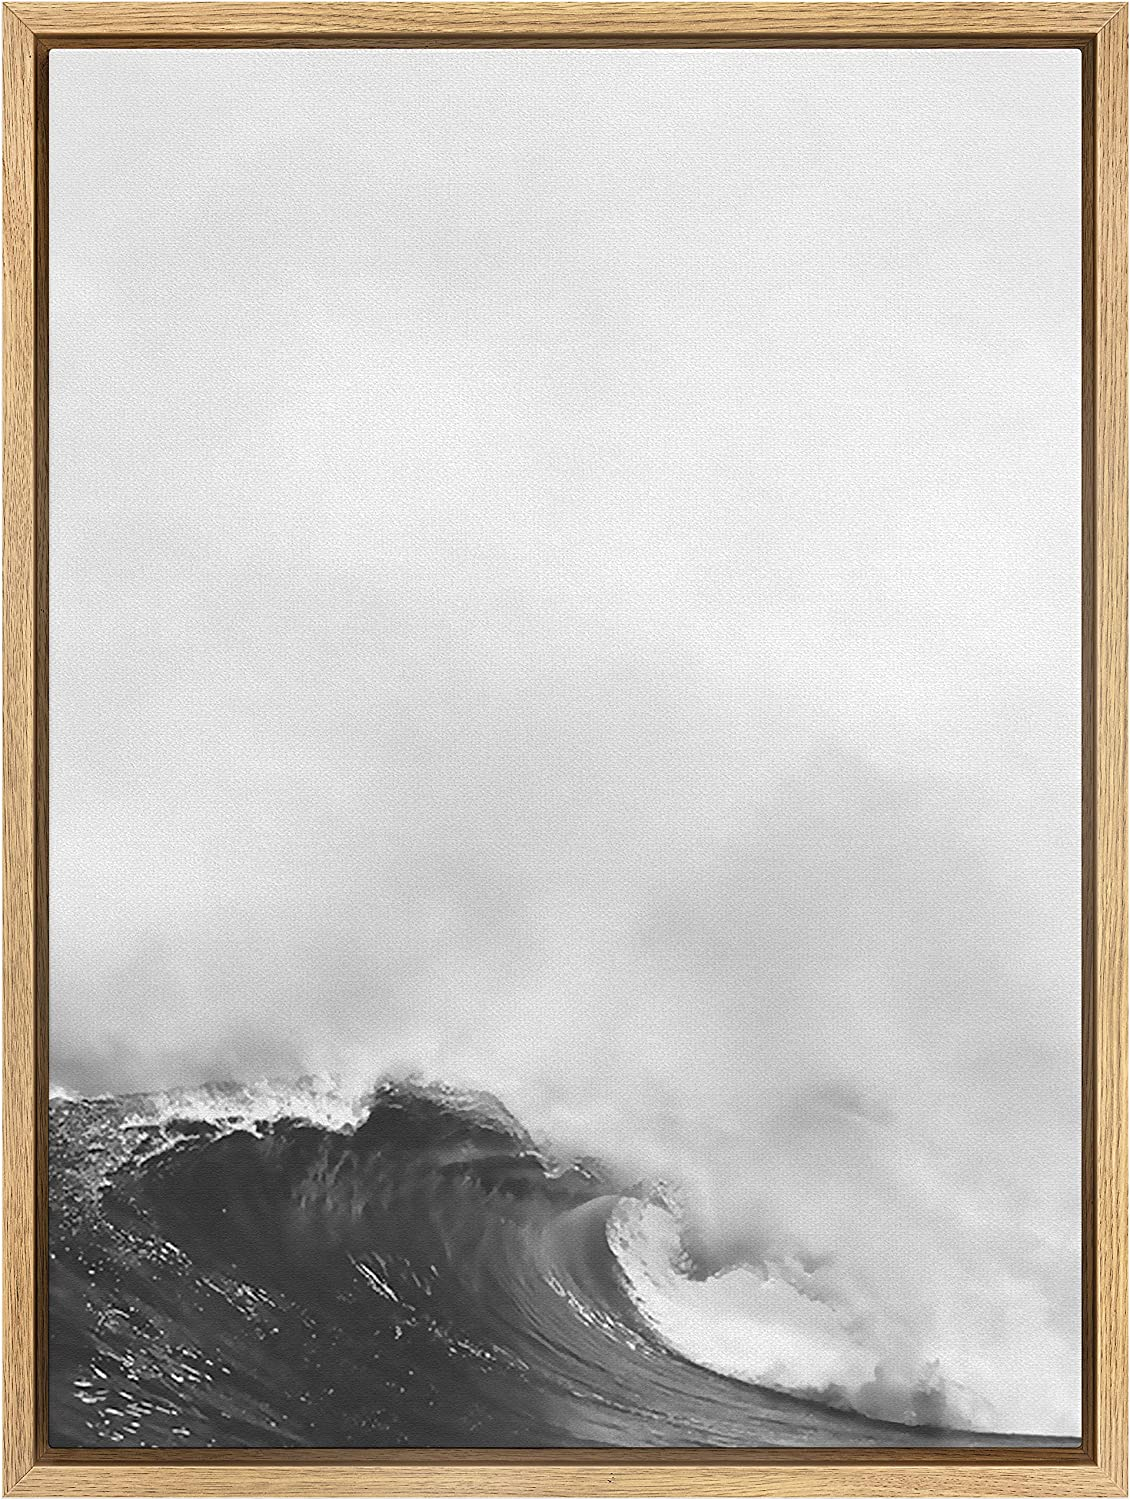 SIGNWIN Many popular brands Framed Canvas Print Wall Art Dramatic in Waves Ocean Phoenix Mall The